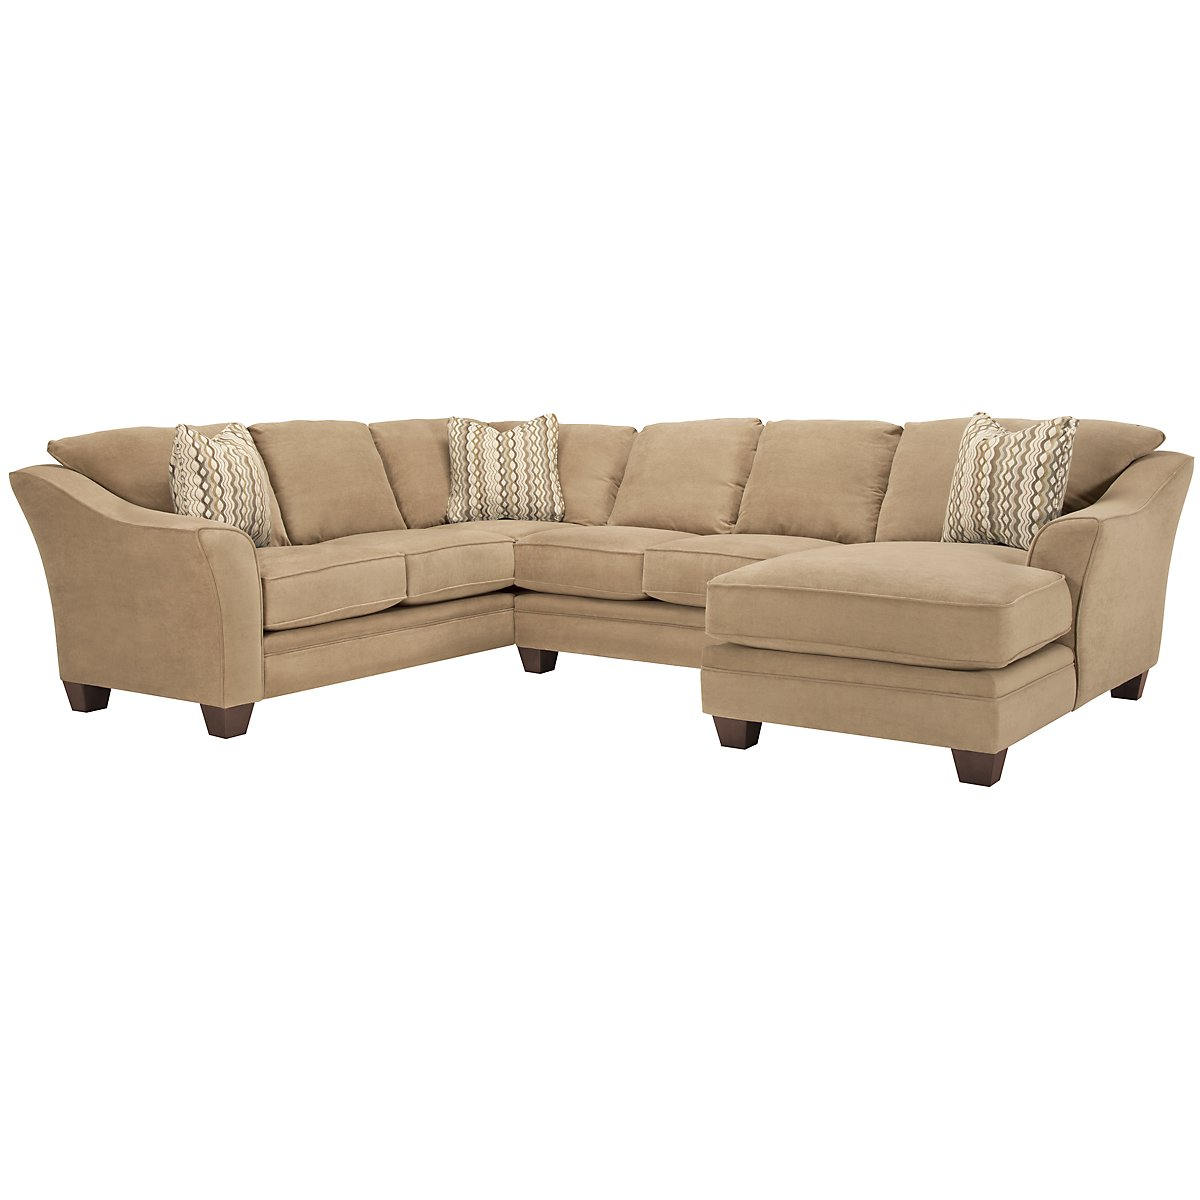 Grant2 Lt Brown Microfiber Right Chaise Sectional